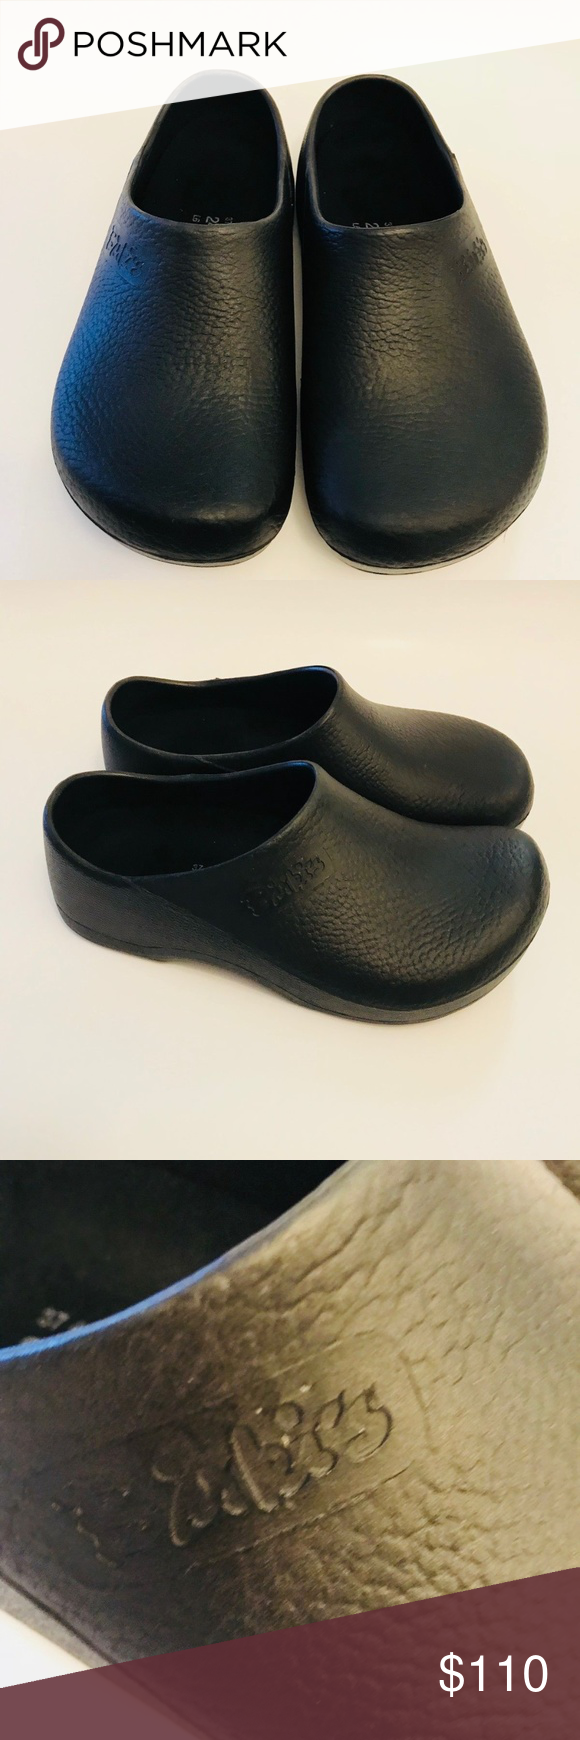 45cab375e0c6 Birkenstock Mens Women s Black Nursing Clogs The Birkenstock Profi Birki is  designed for the true professional